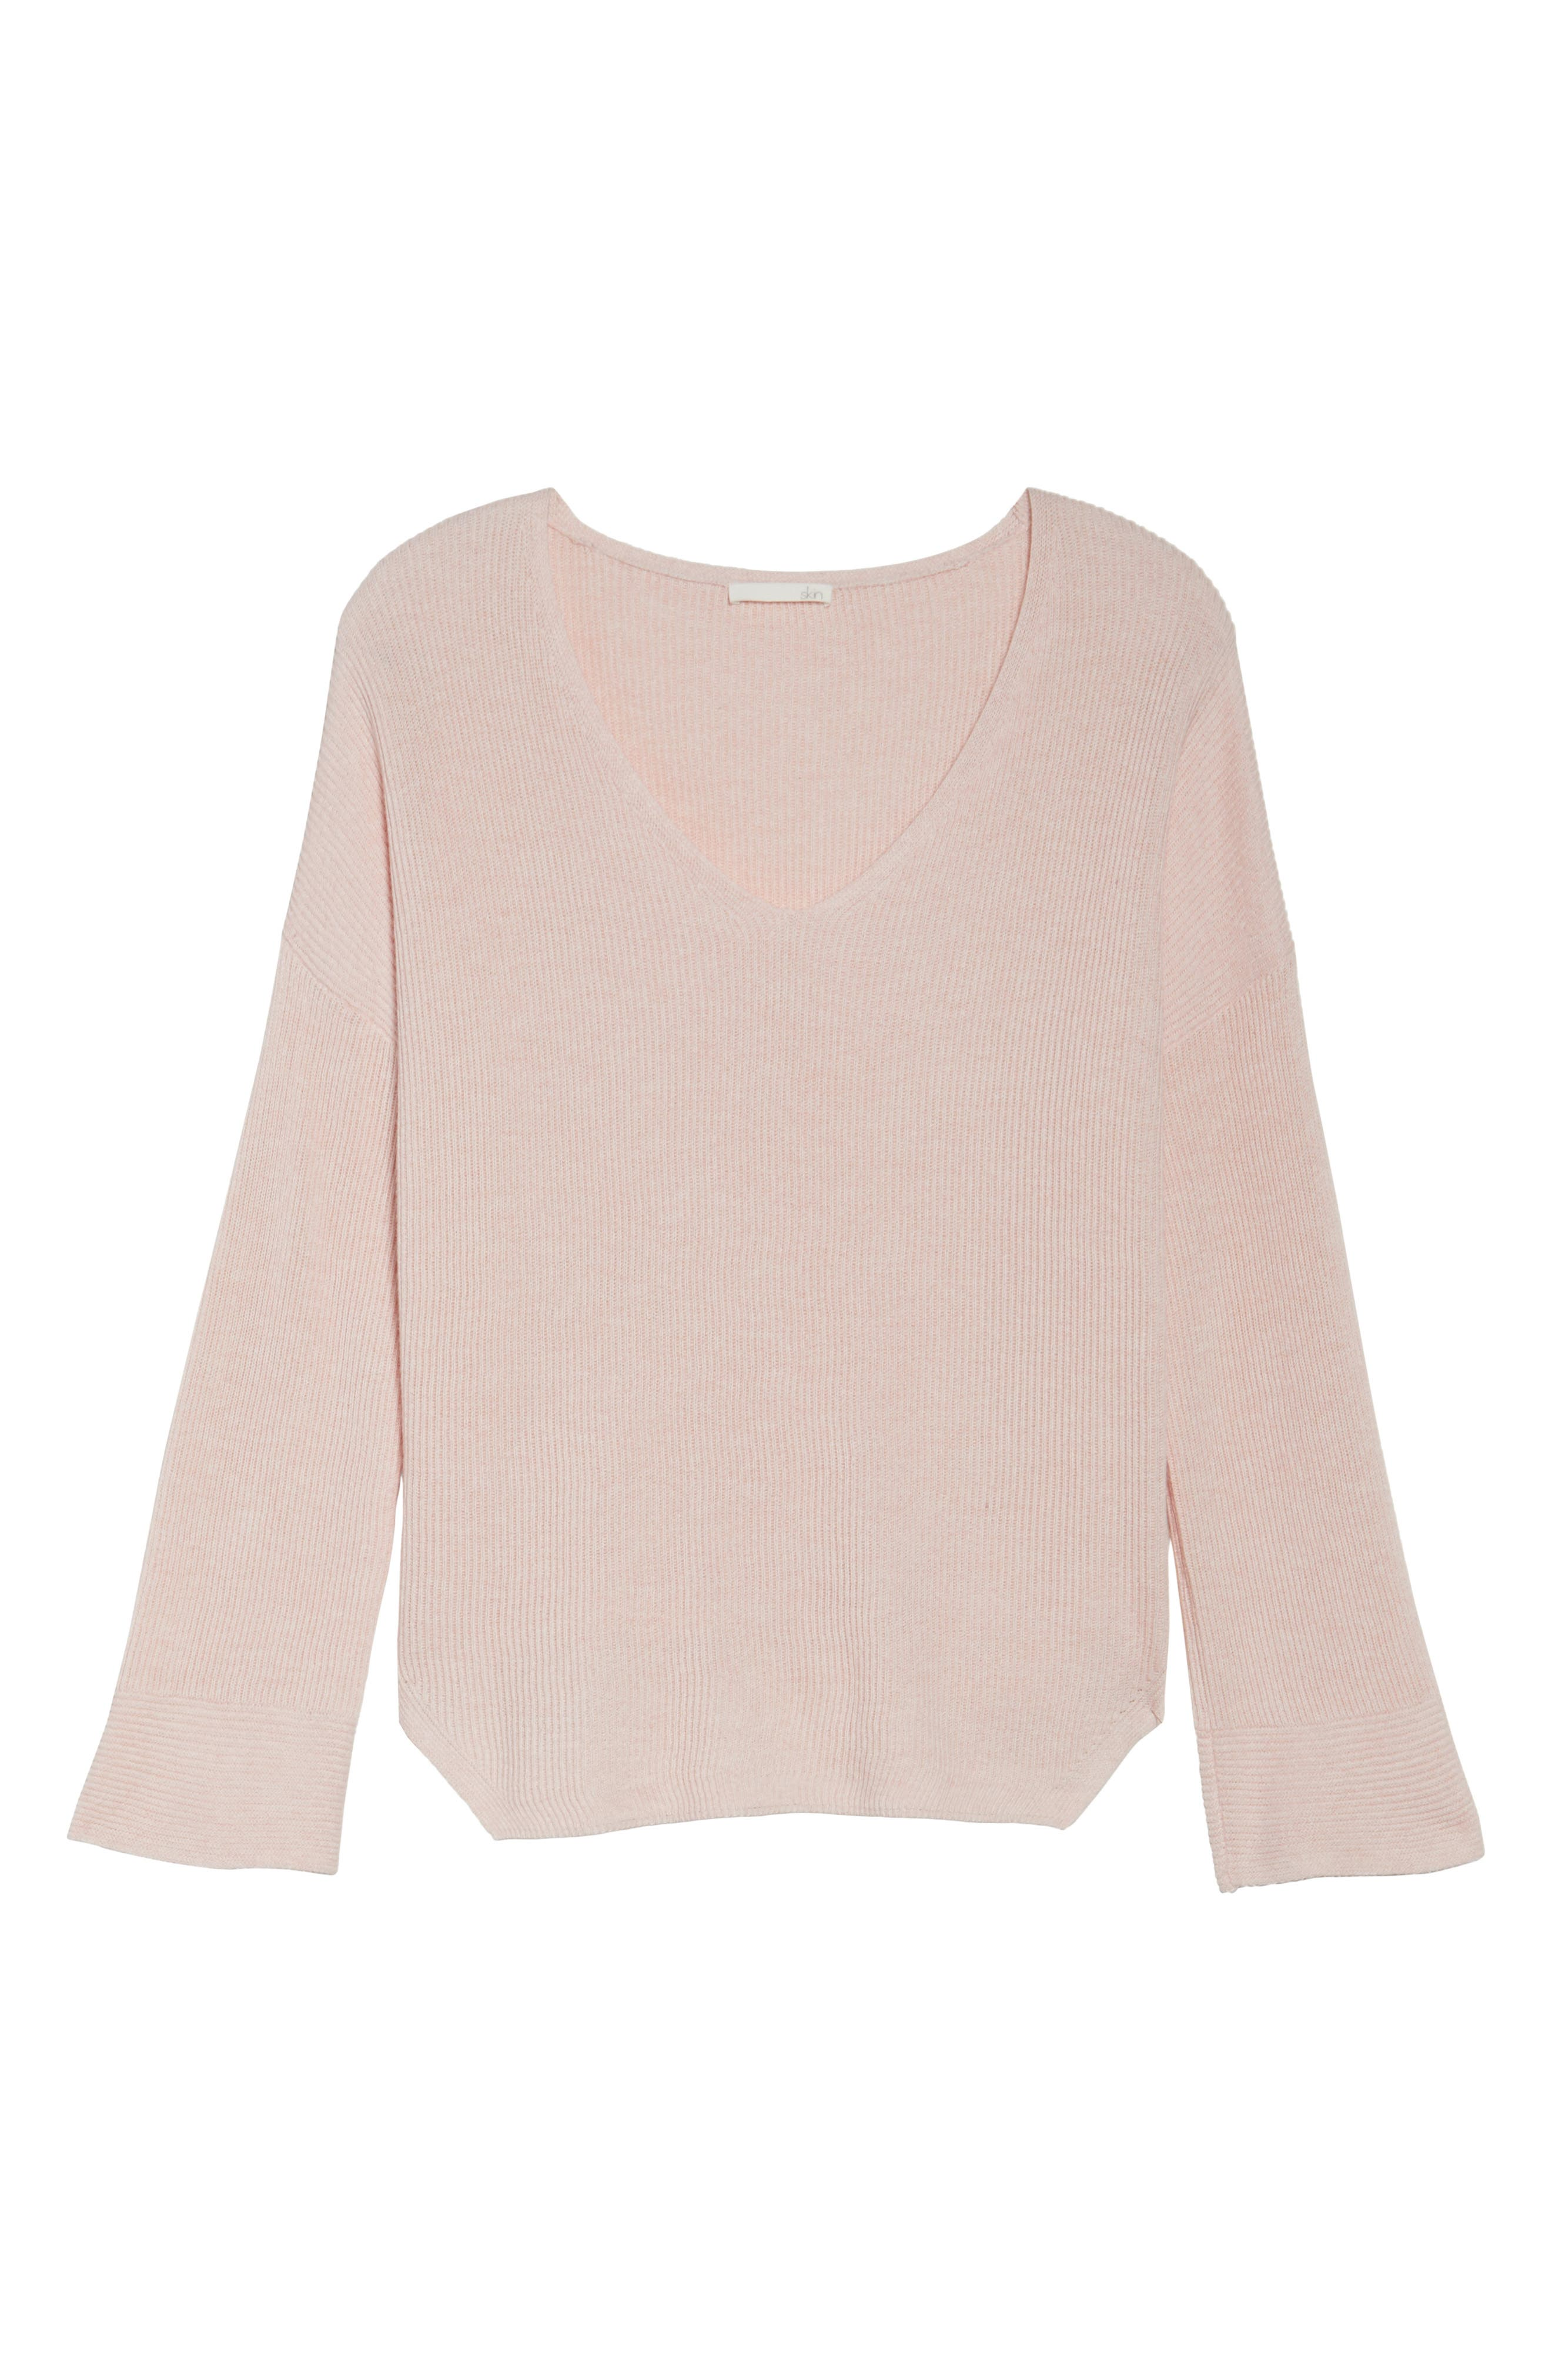 Veronica Lounge Pullover,                             Alternate thumbnail 12, color,